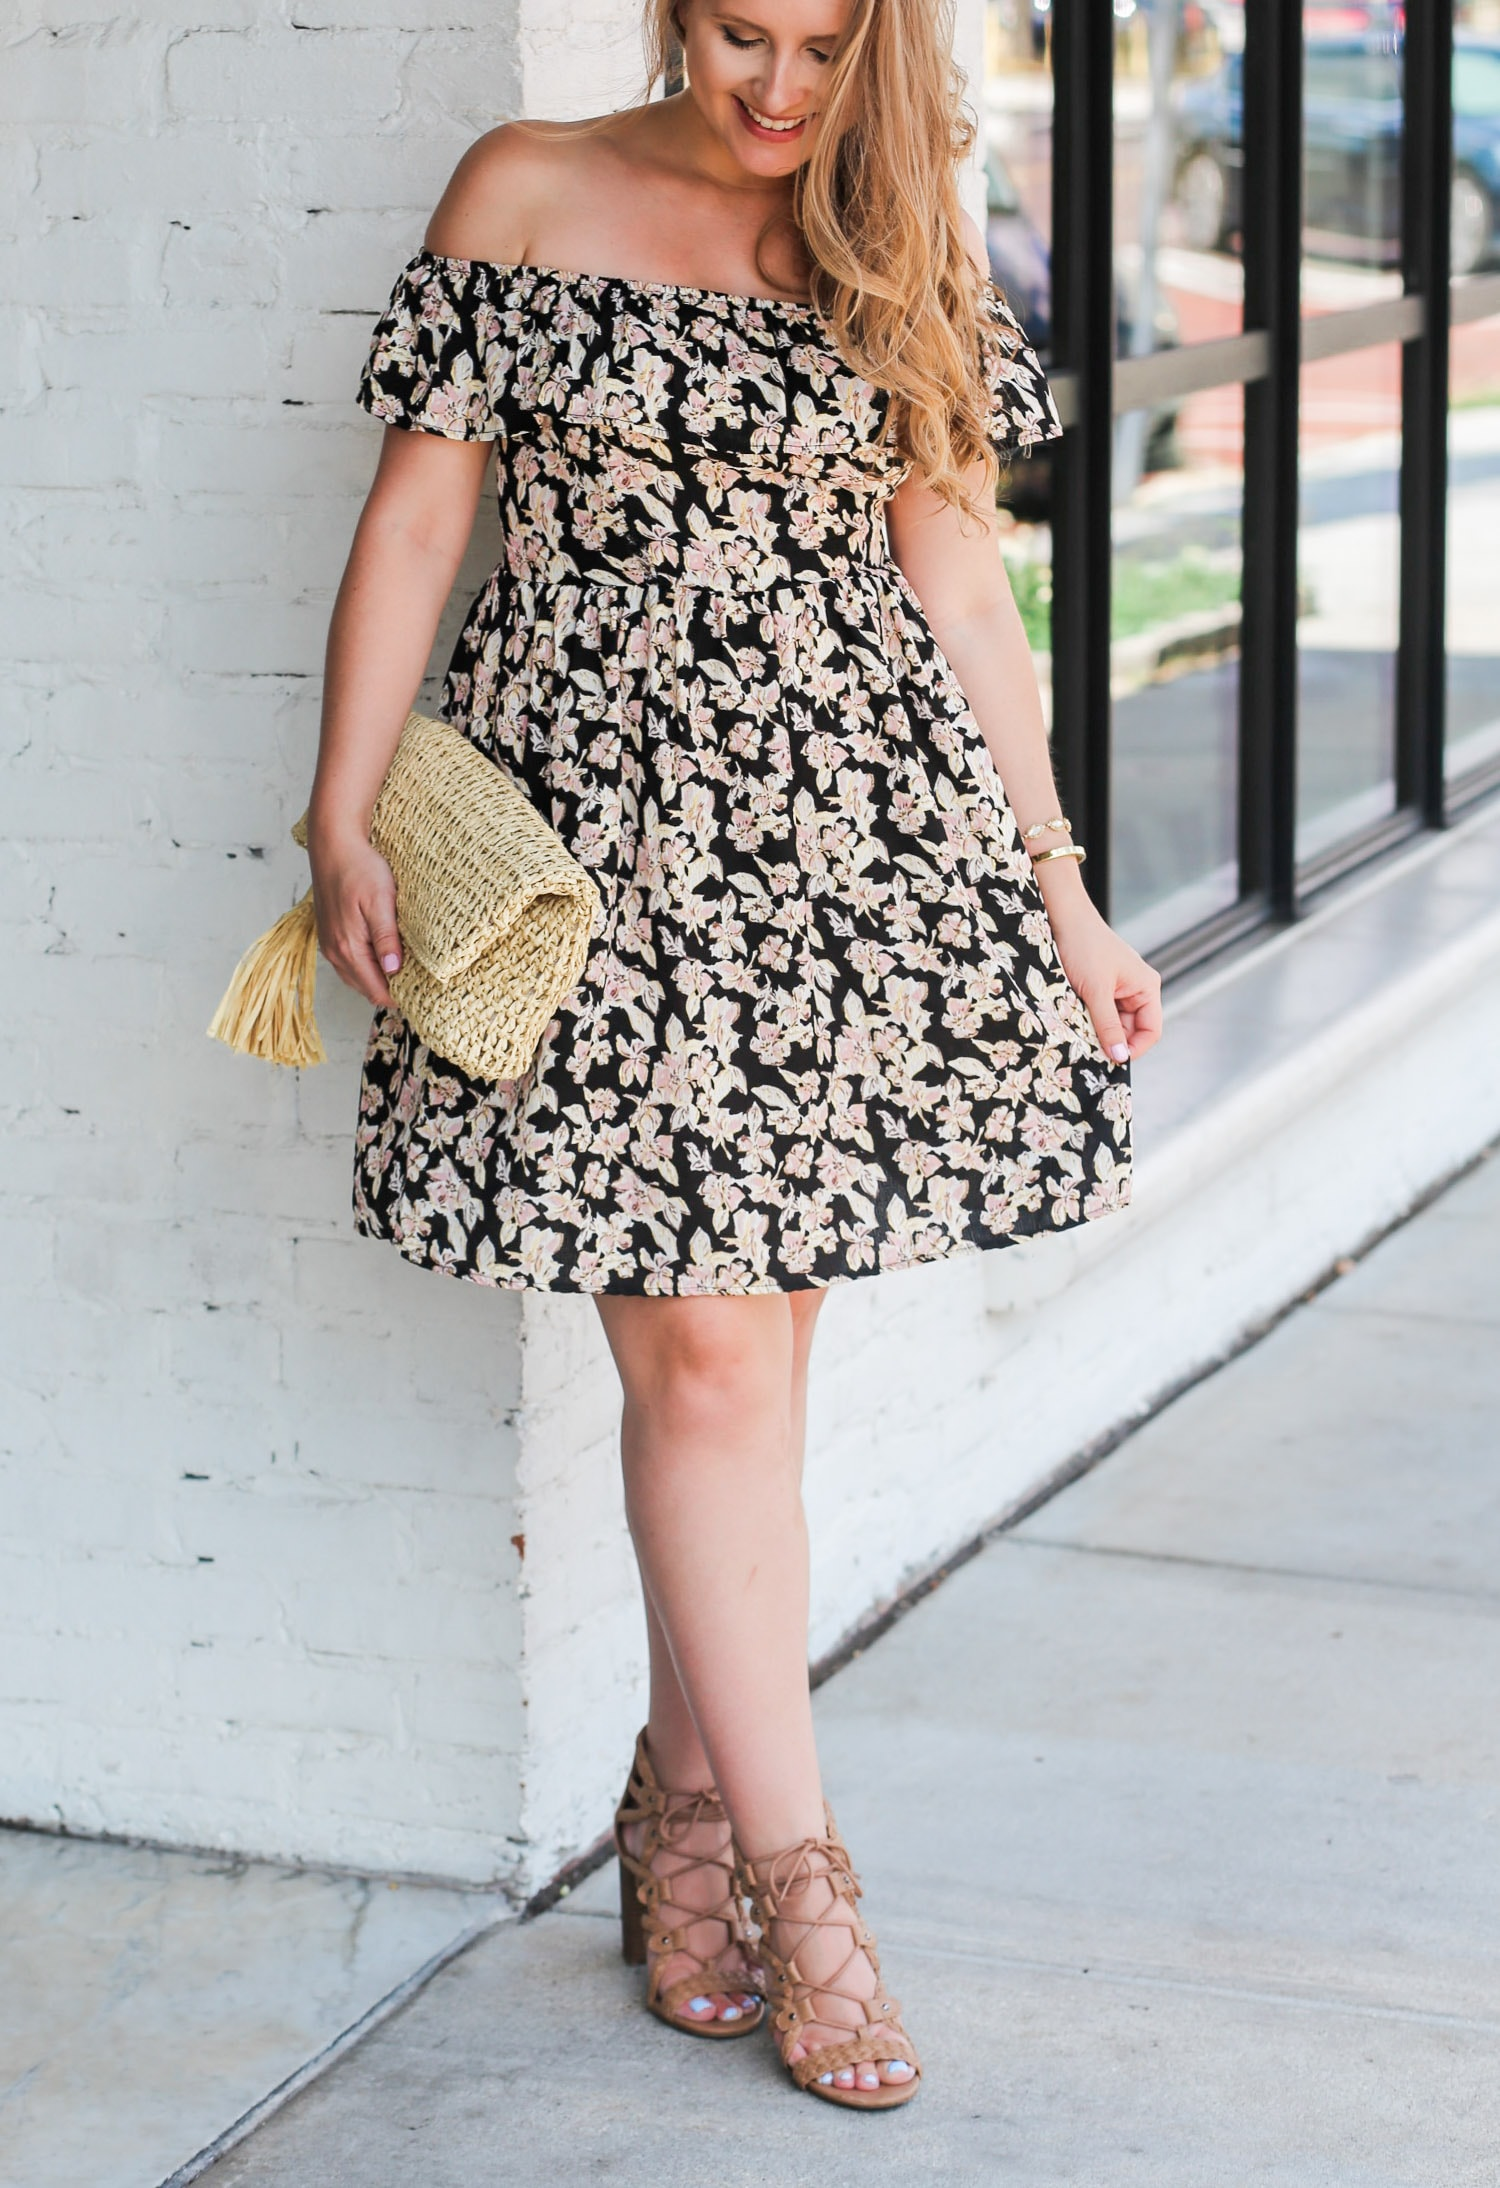 Loving this affordable floral dress for summer! Can you believe this fit and flare sun dress is under $25, AND these gorgeous nude gladiator heeled sandals are also under $25? Click through this pin to see this cute summer outfit idea styled by Orlando, Florida fashion blogger Ashley Brooke Nicholas! | Floral off the shoulder dress, straw clutch with tassel, raffia clutch, lace up sandals, lace up heels, cute summer heels, affordable outfit ideas, fashion blogger outfits, feminine style